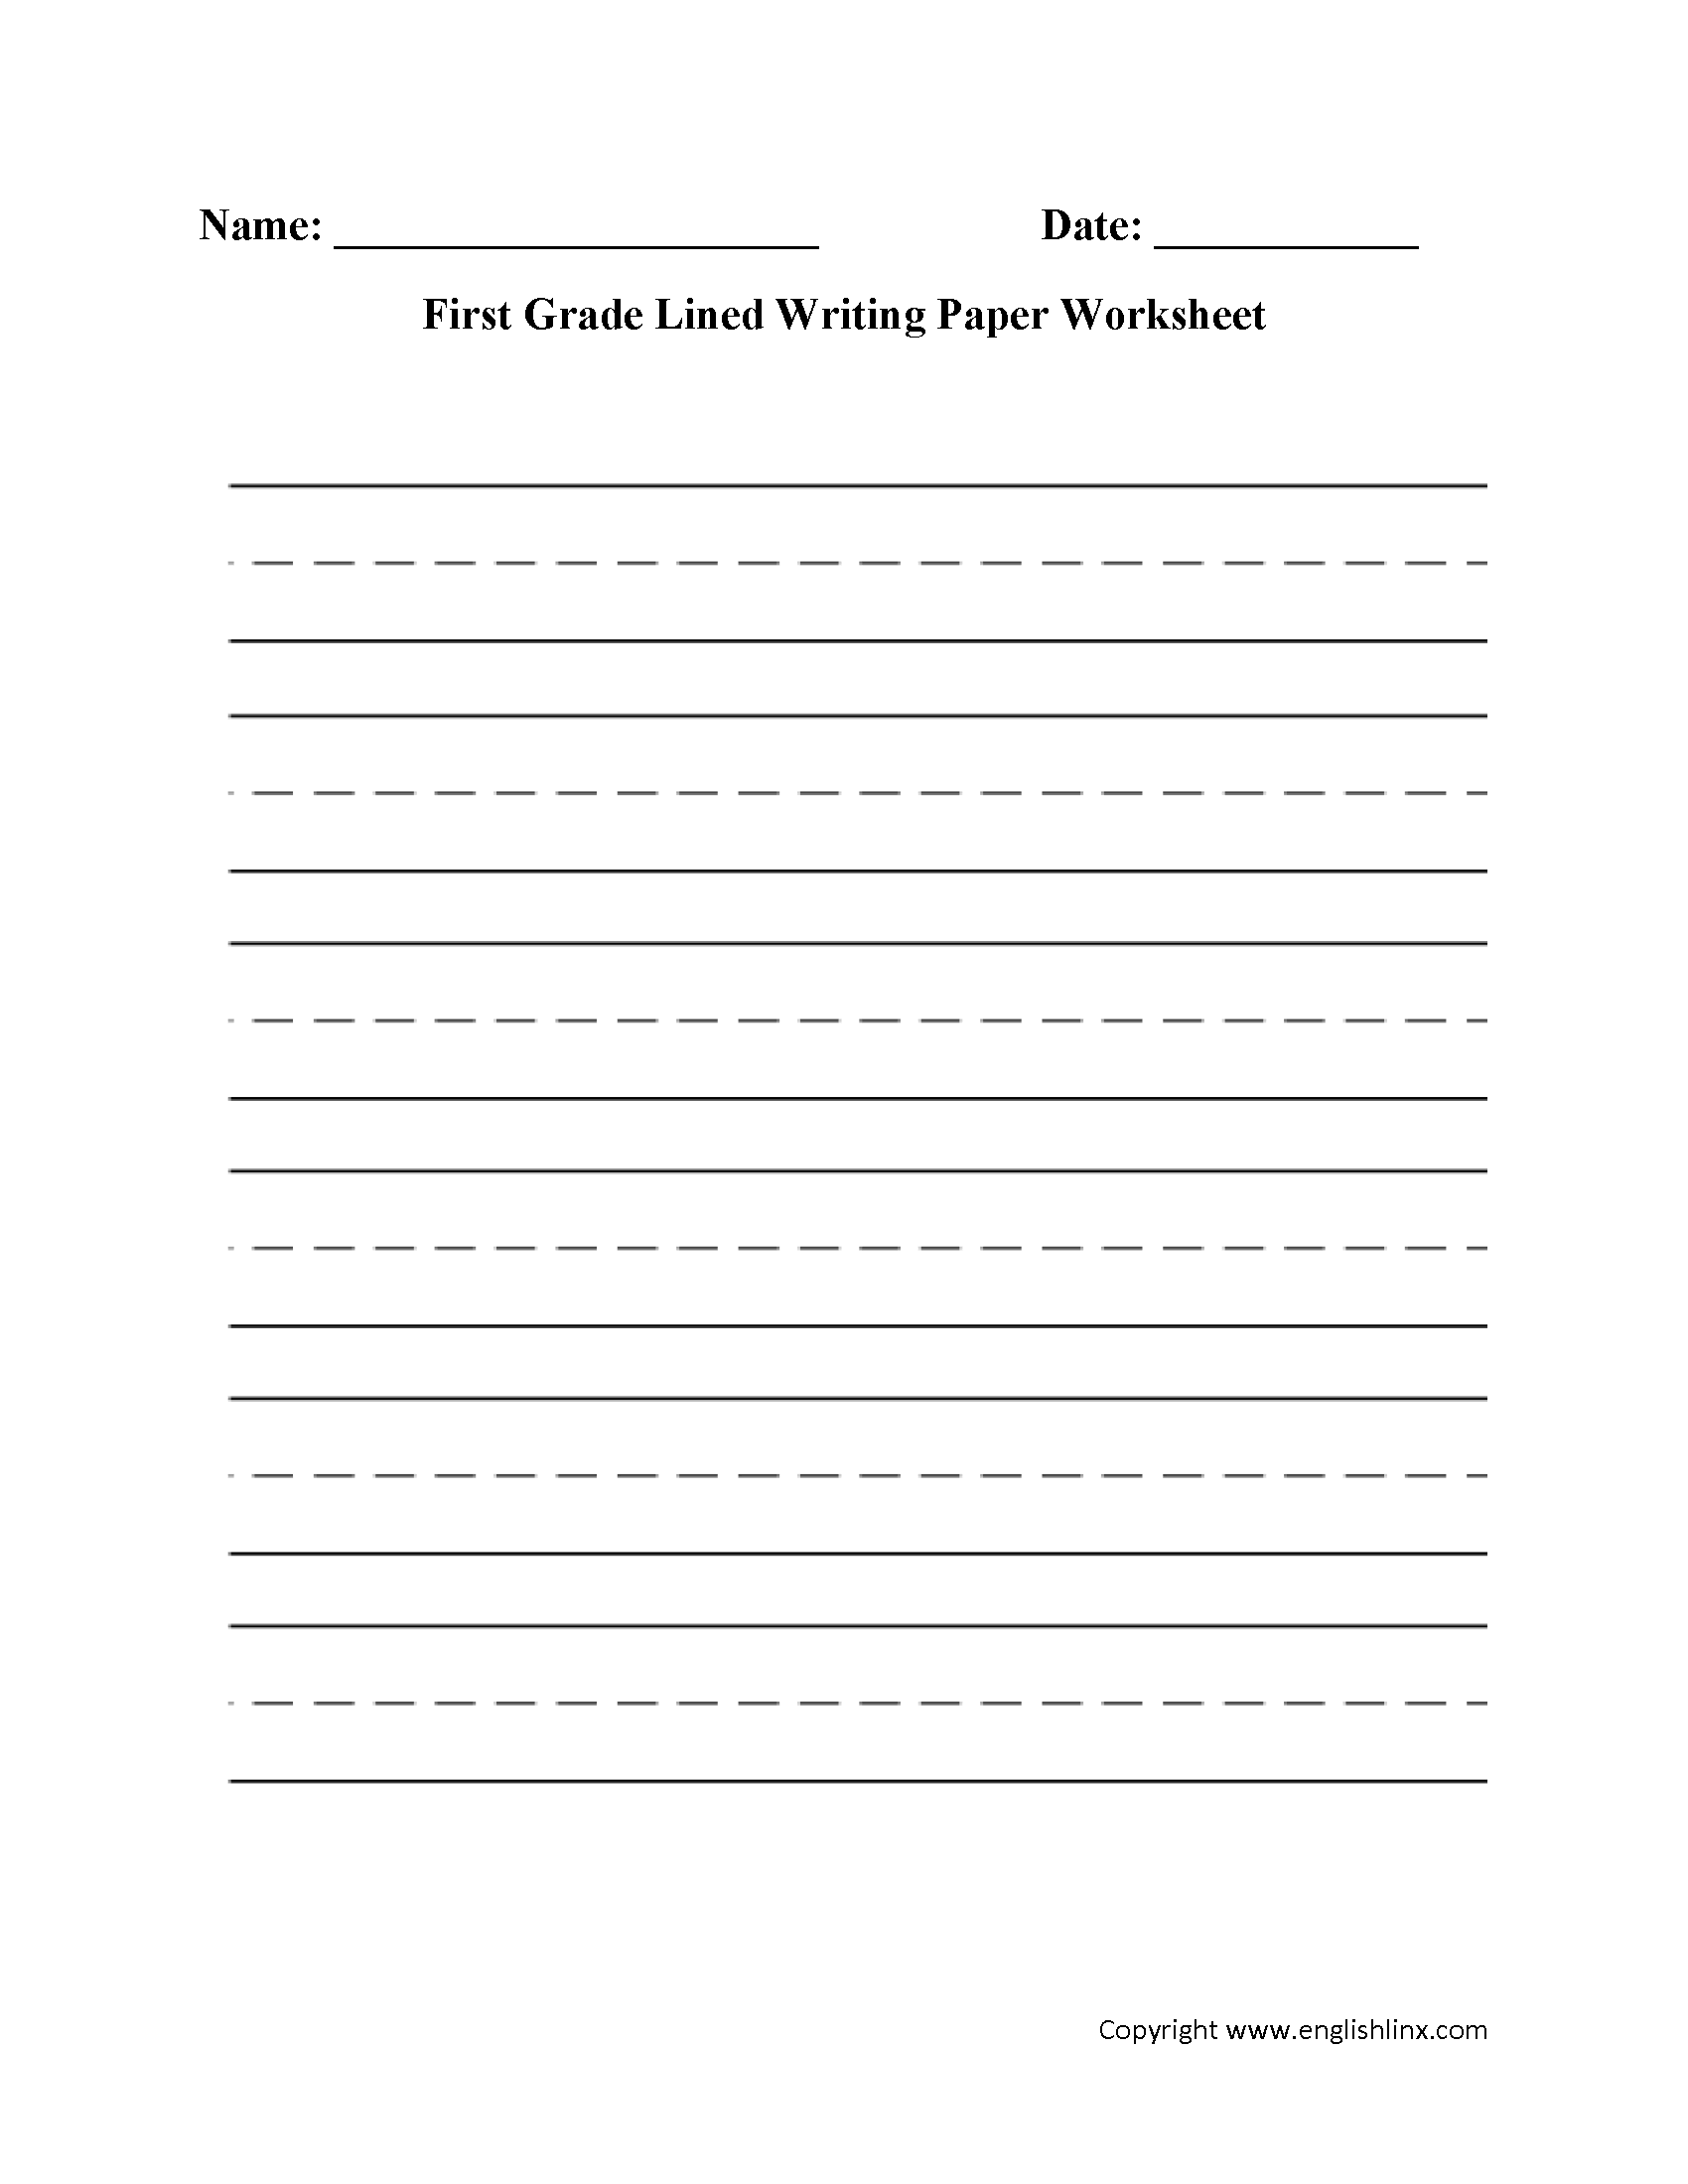 First Grade Lined Writing Paper Worksheet | Worksheets ...